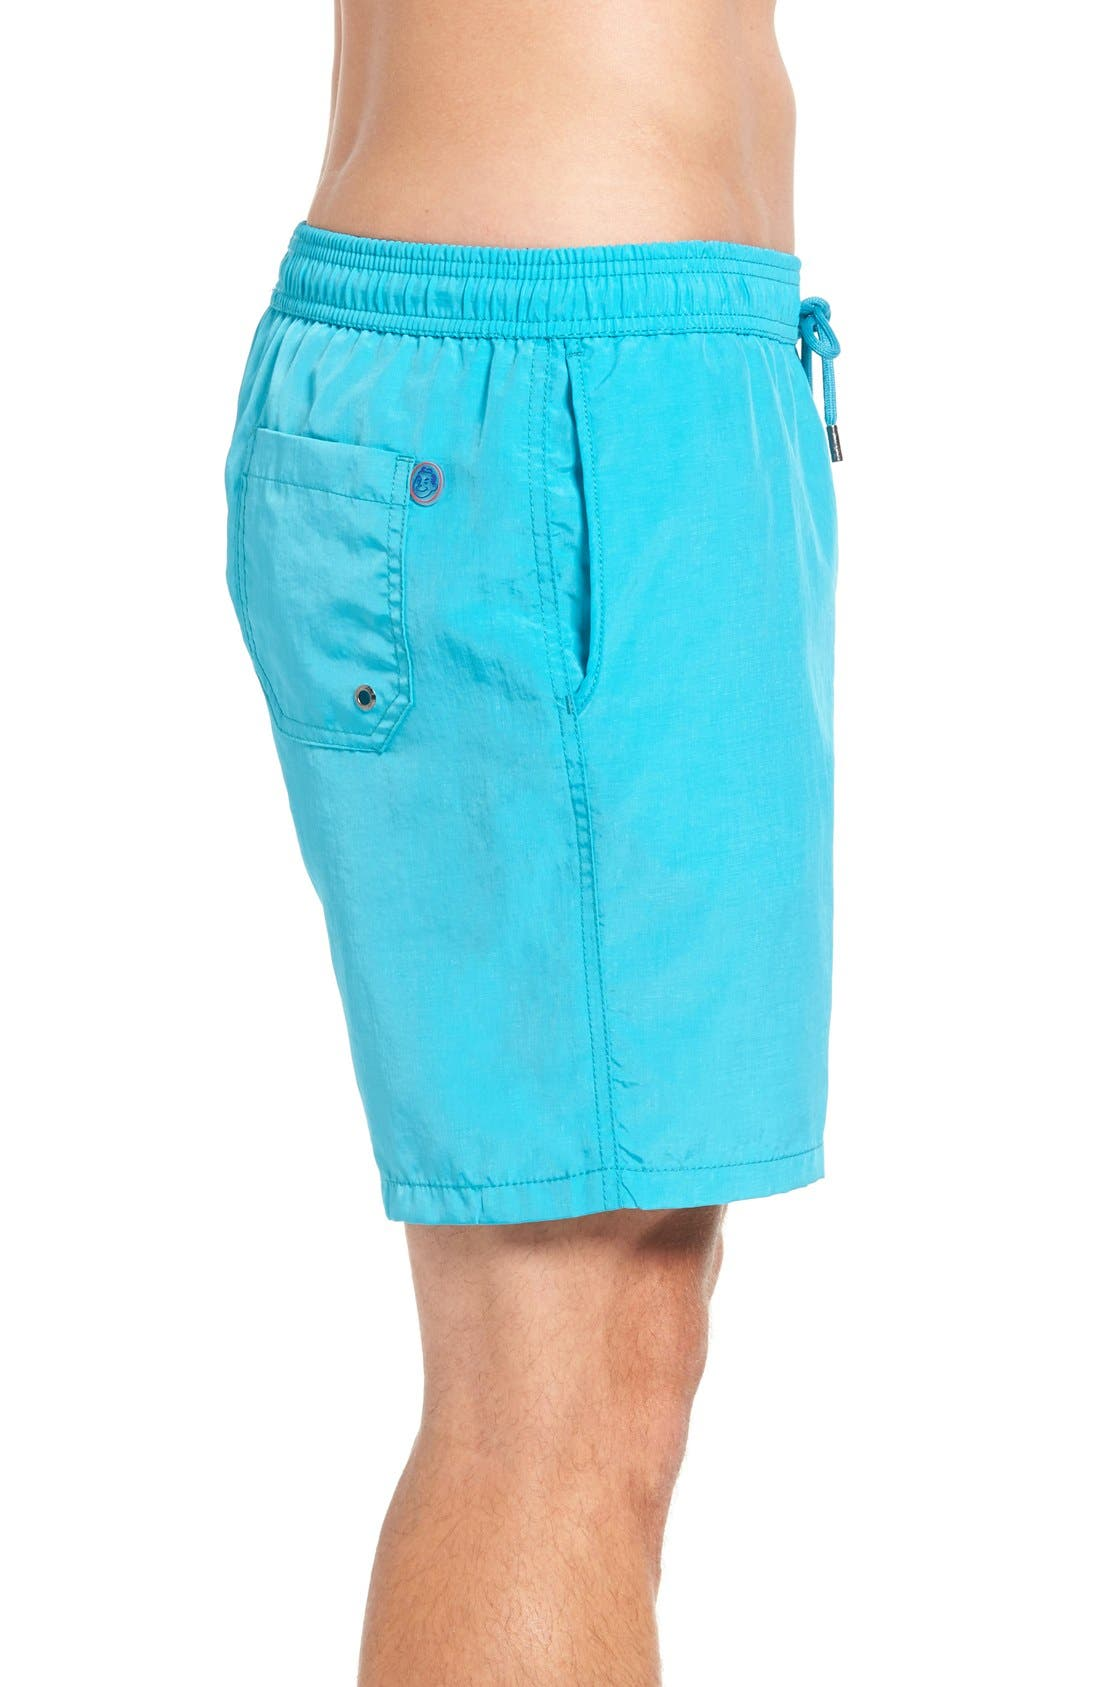 Cerulean Solid Swim Trunks,                             Alternate thumbnail 3, color,                             450